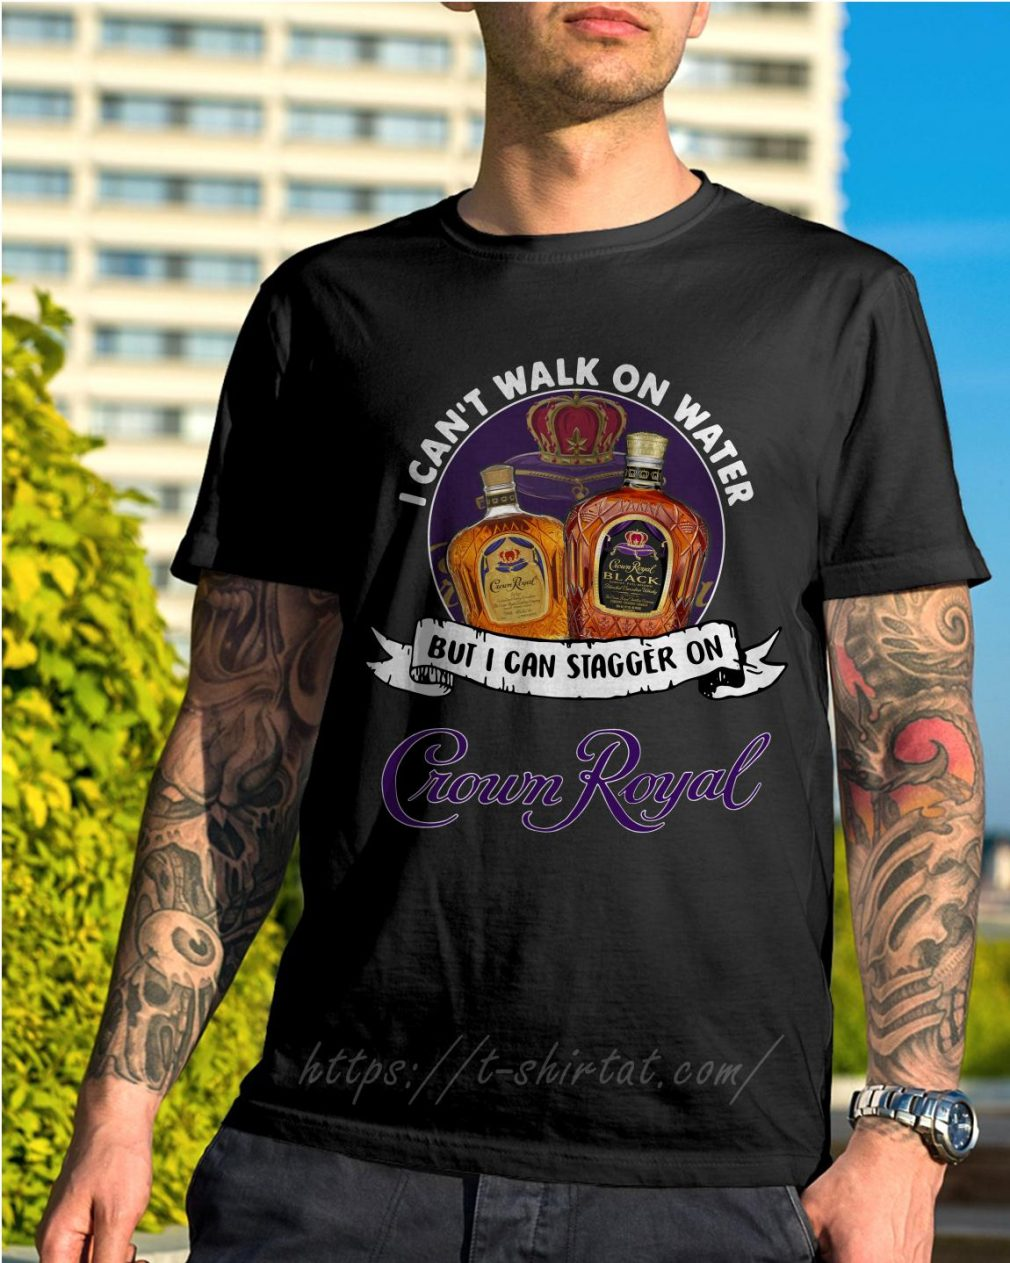 I can't walk on water but I can stagger on Crown Royal shirt